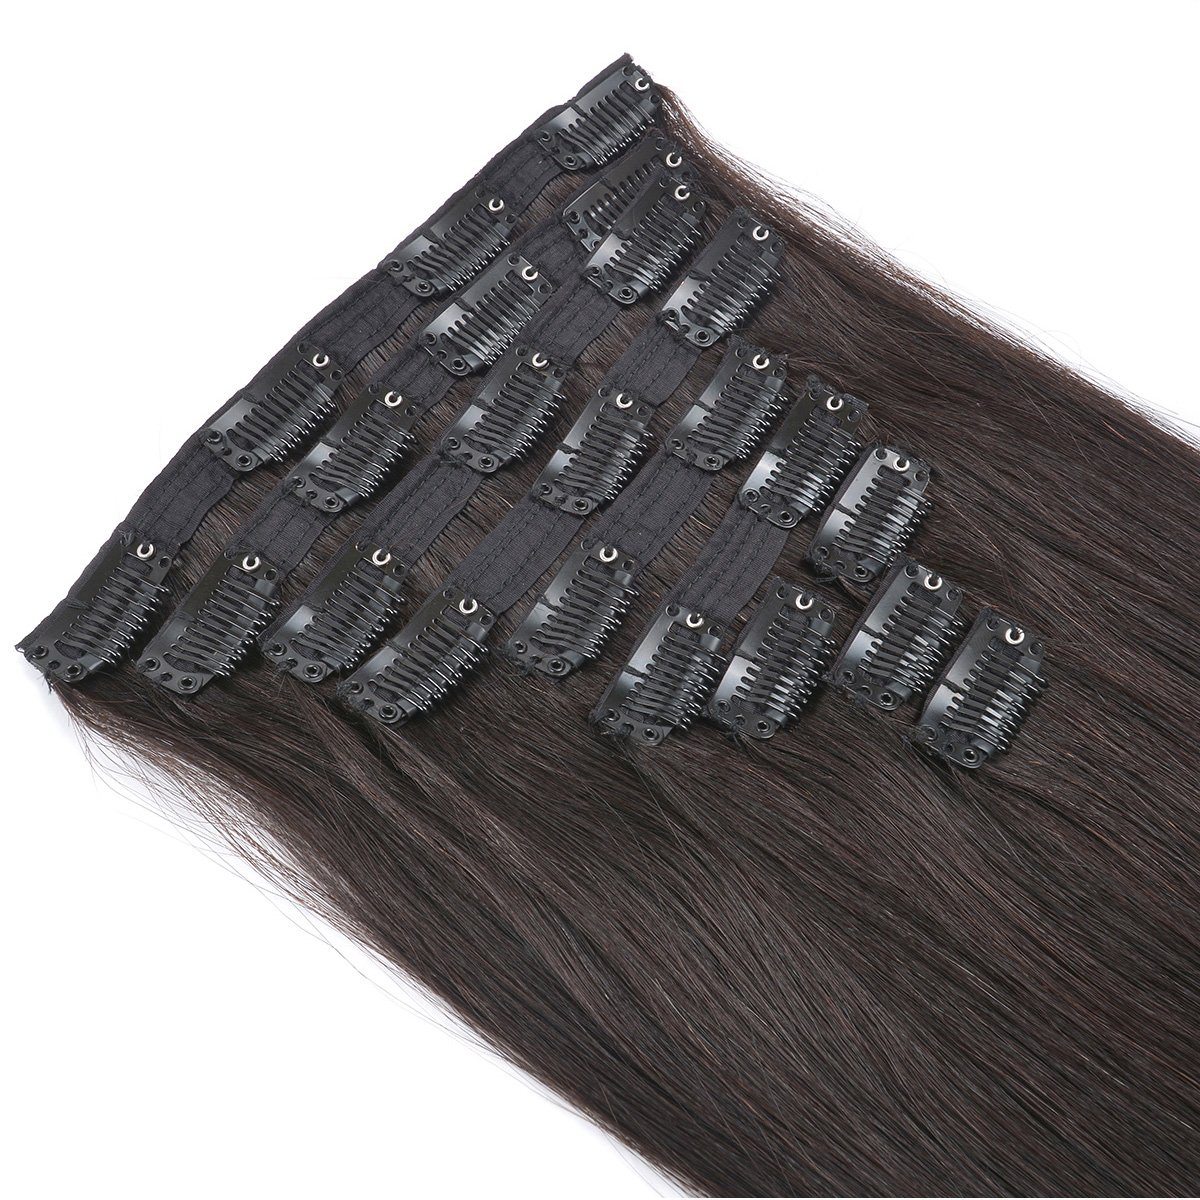 20'' Clip in Human Hair Extensions Natural Hair Clip in Extensions for Thick Hair Full Head Off Black #1B 10pieces 220grams/7.7oz by BEAUTY PLUS (Image #5)